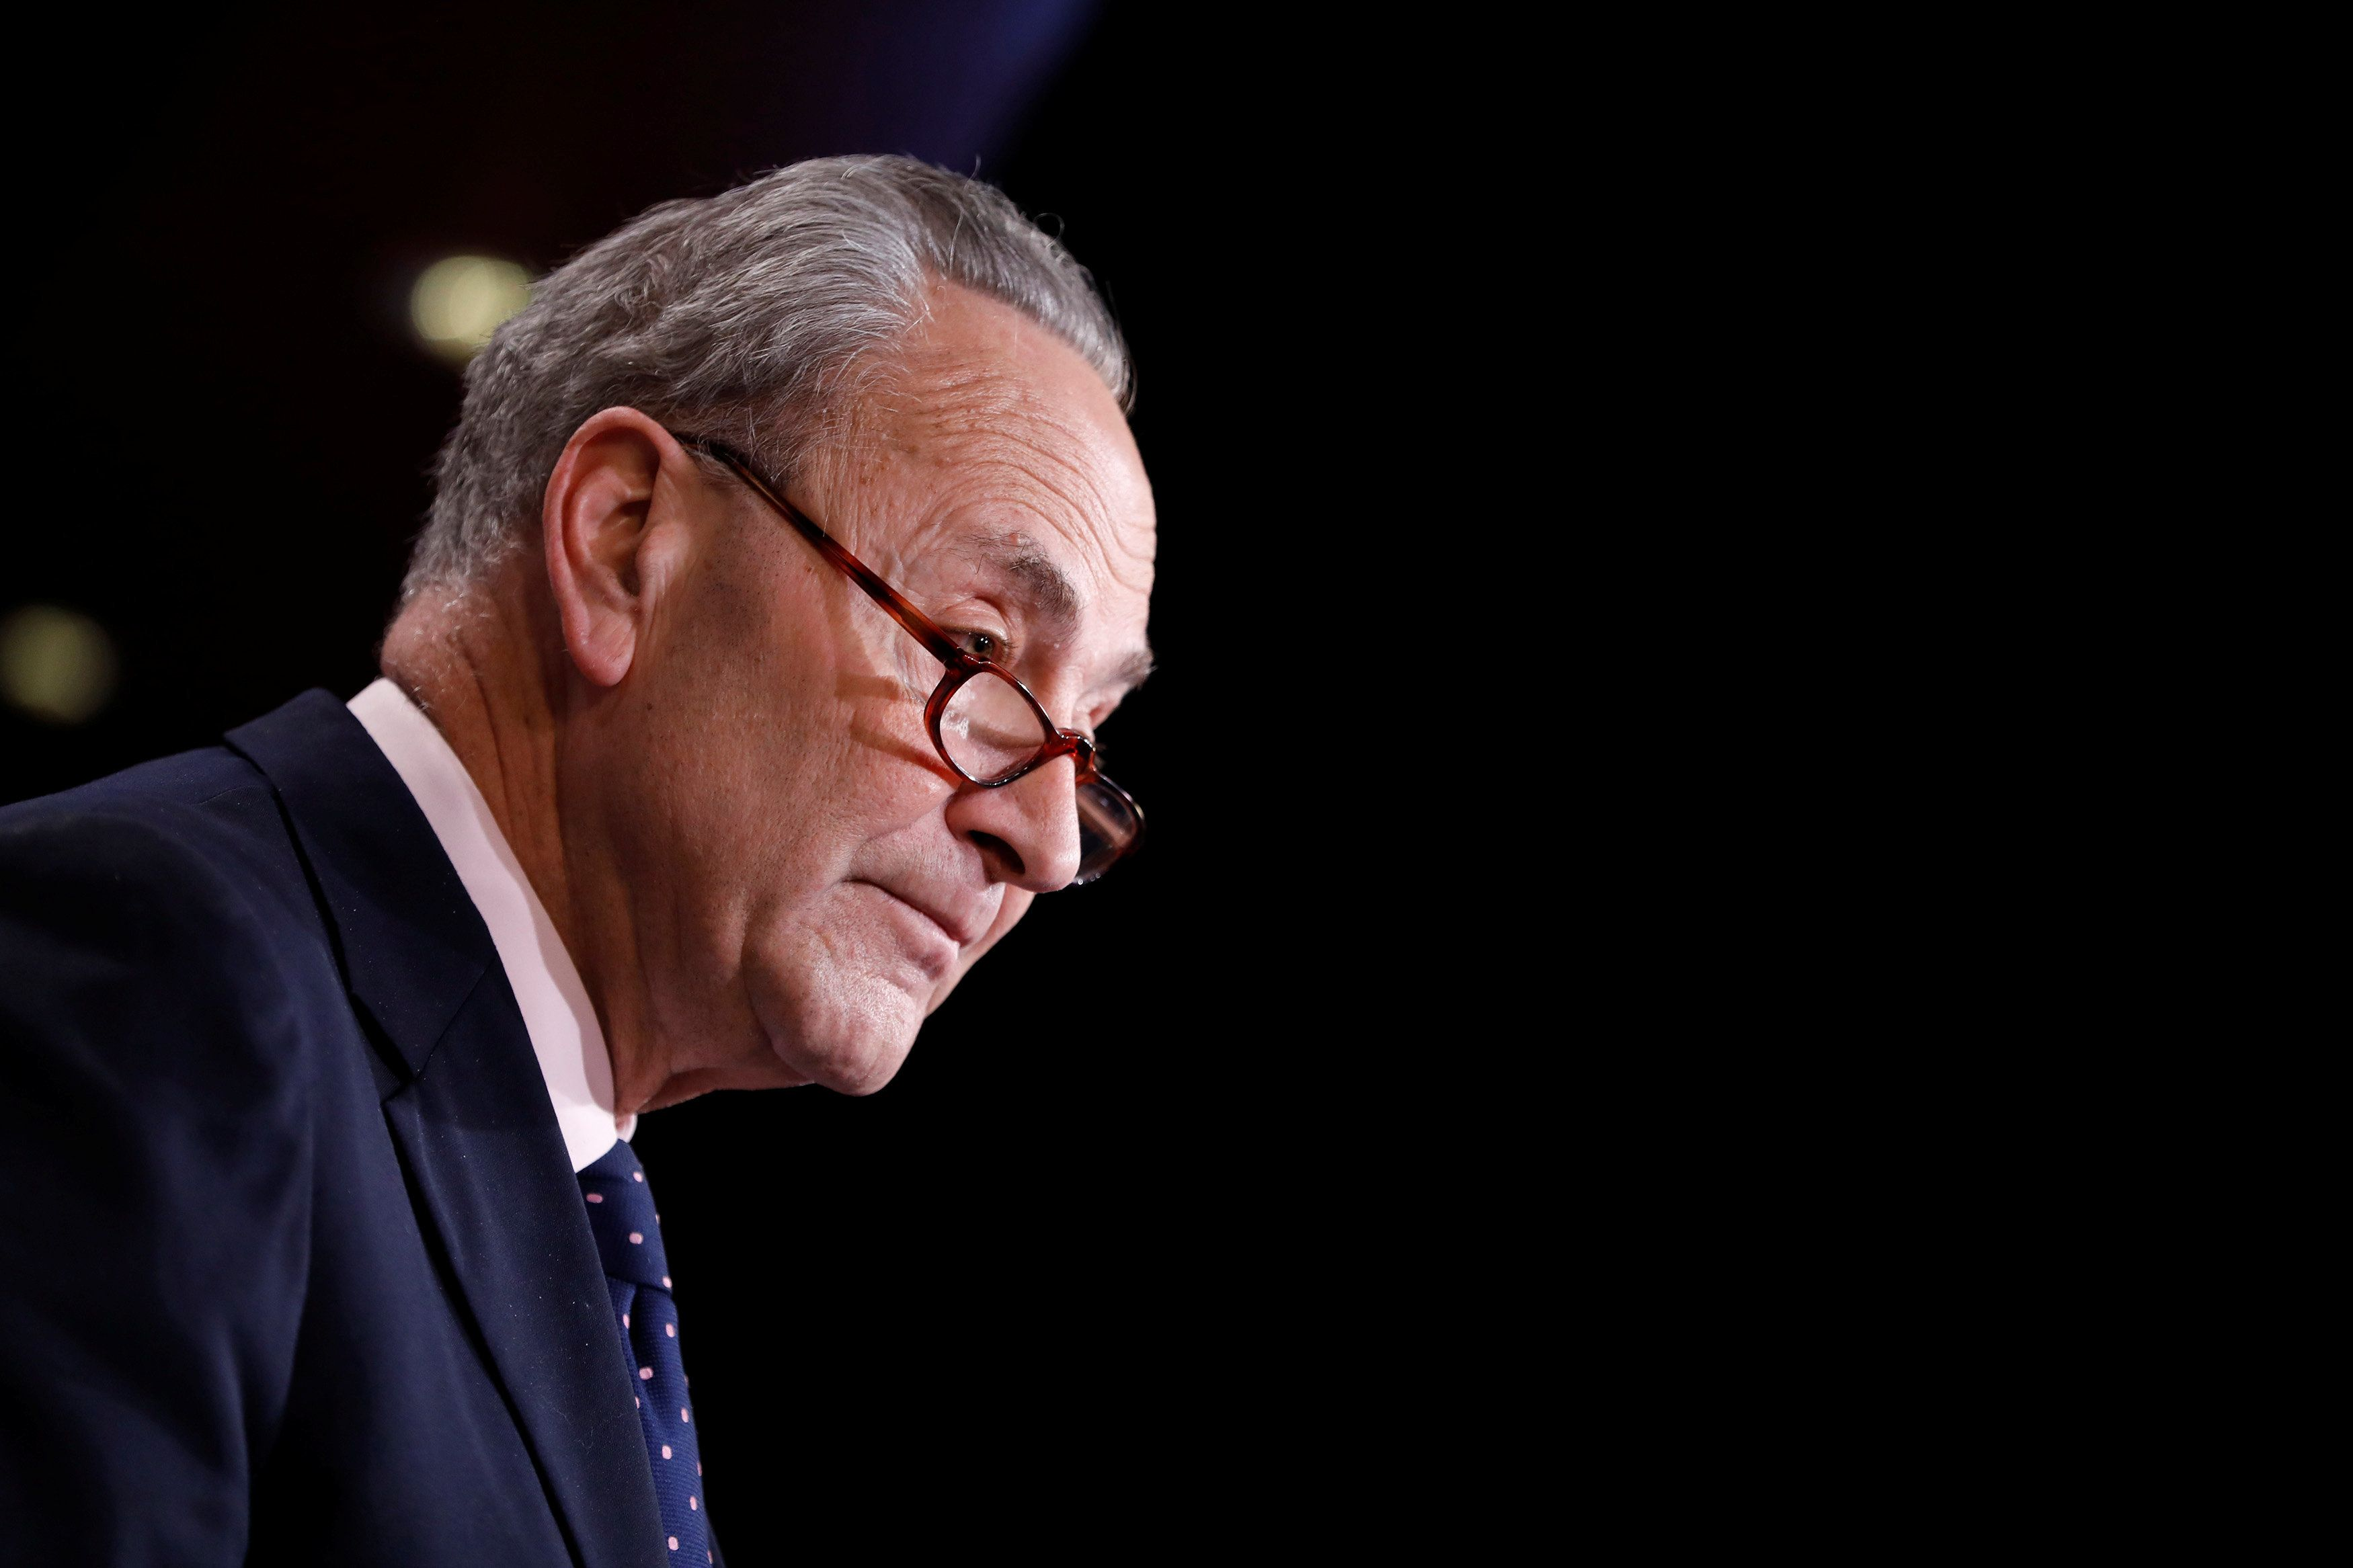 U.S. Senate Minority Leader Chuck Schumer speaks with reporters about President Donald Trump's firing of FBI Director James Comey on Capitol Hill in Washington, D.C., U.S. May 9, 2017.  REUTERS/Aaron P. Bernstein